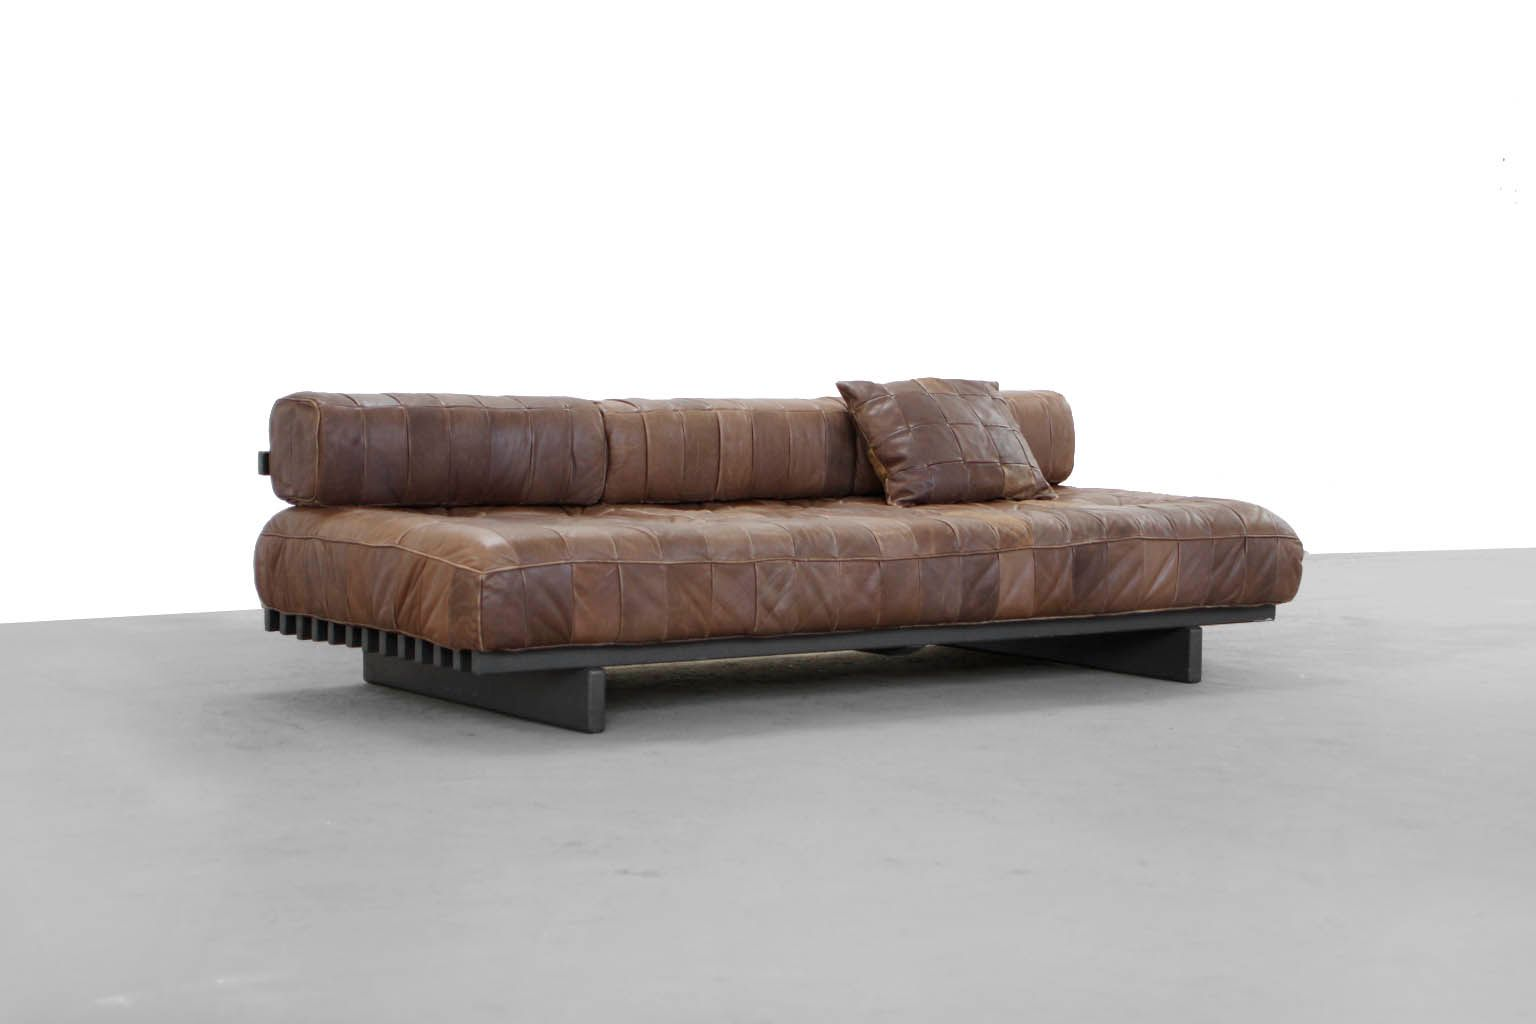 Mid century sofa daybed by de sede 1972 for sale at pamono for Mid century daybed sofa